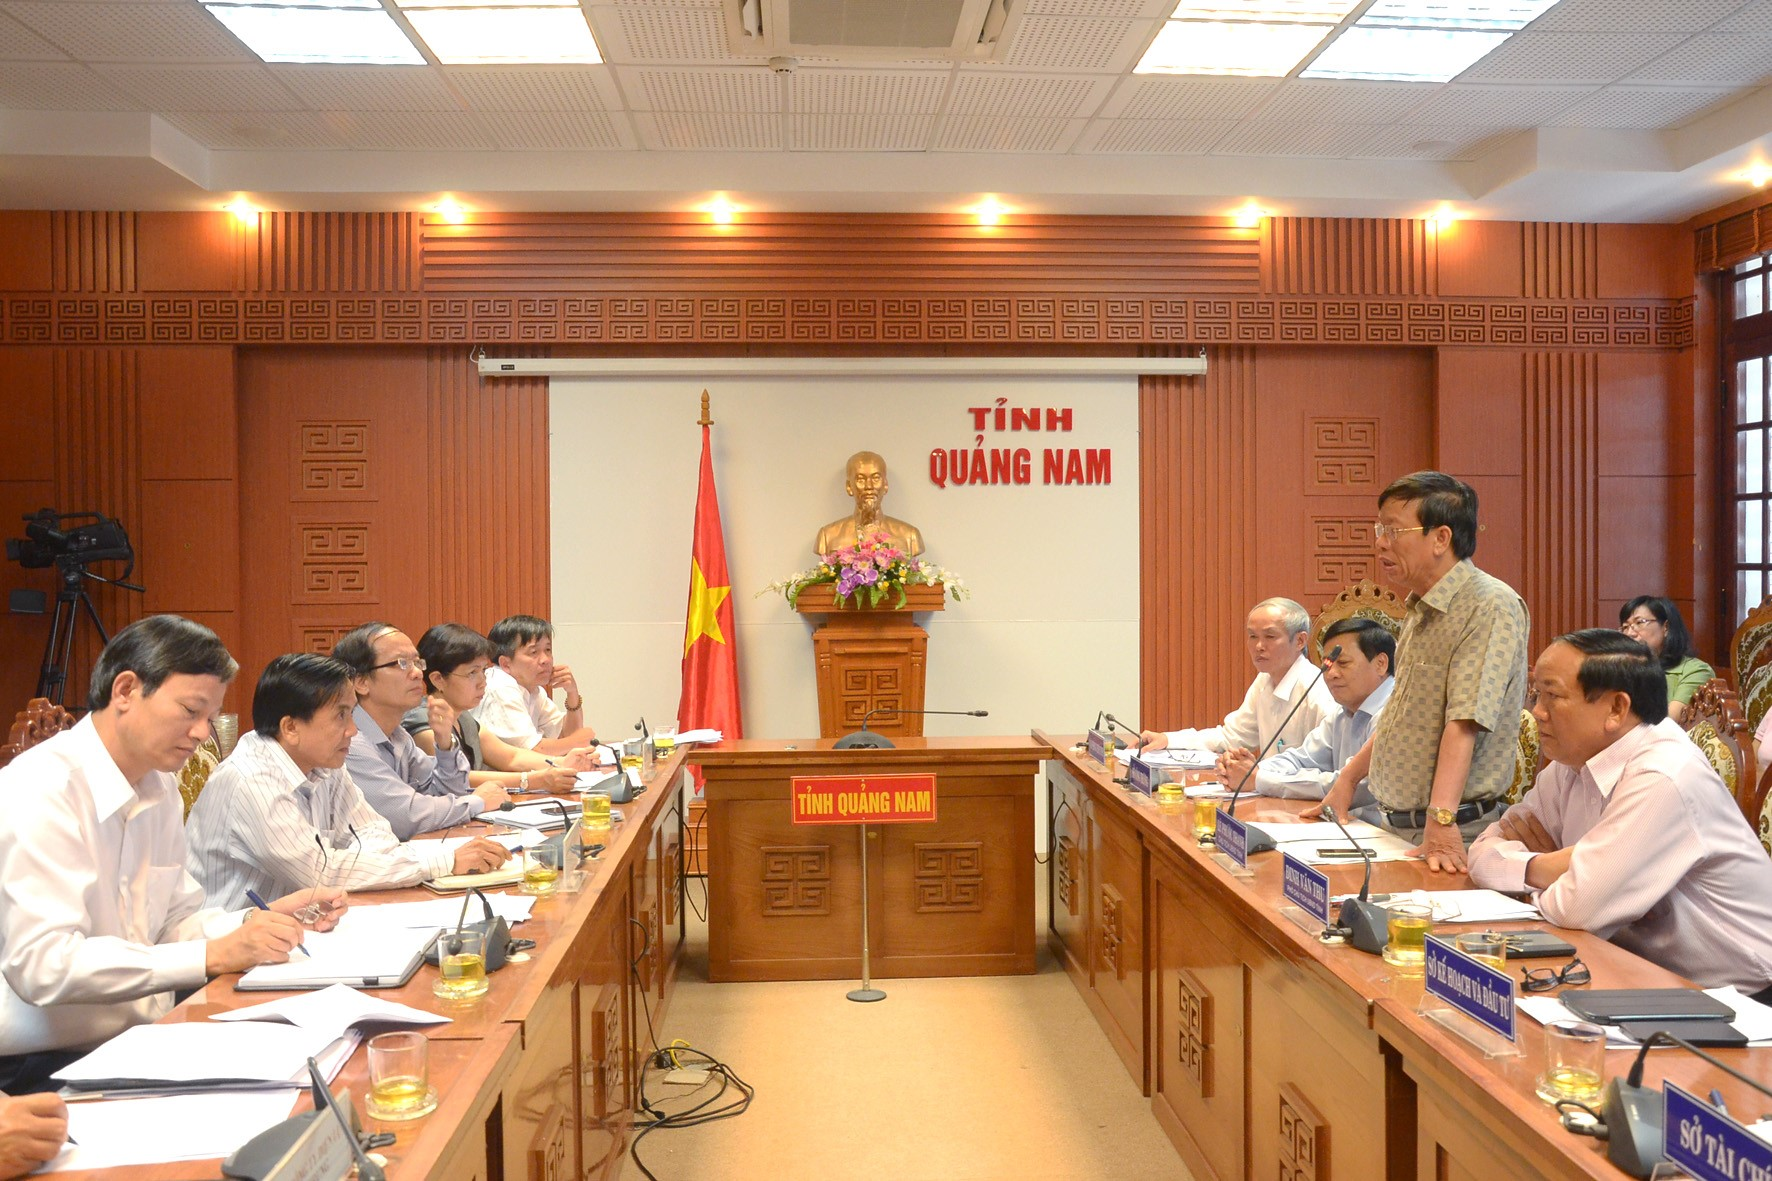 A working session between the leaders of Quang Nam provincial People's Committee and the Central Power Corporation about the project of the new power source for Cham Islands.